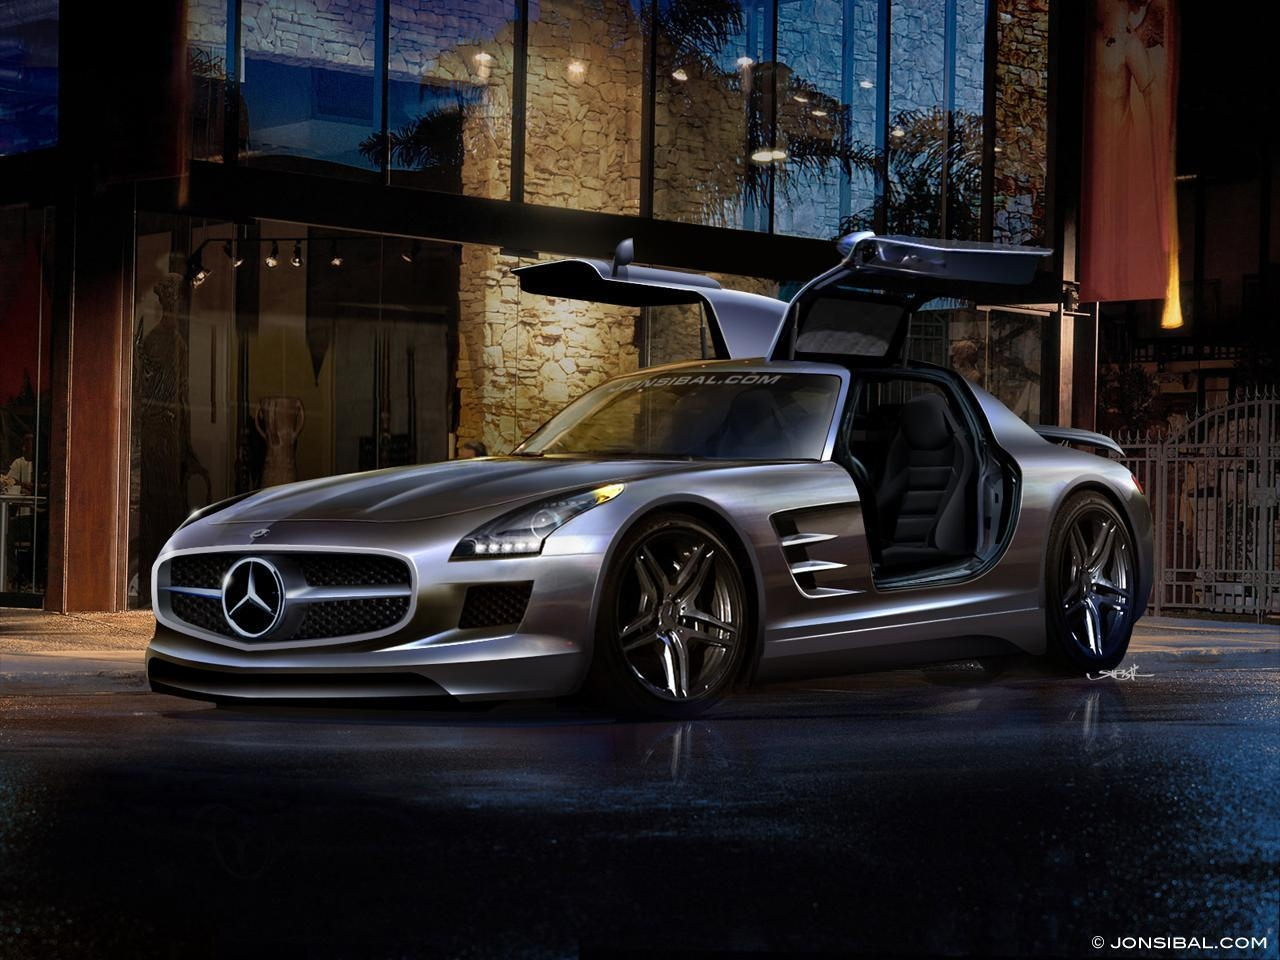 50 HD Backgrounds and Wallpapers of Mercedes Benz For Download 1280x960